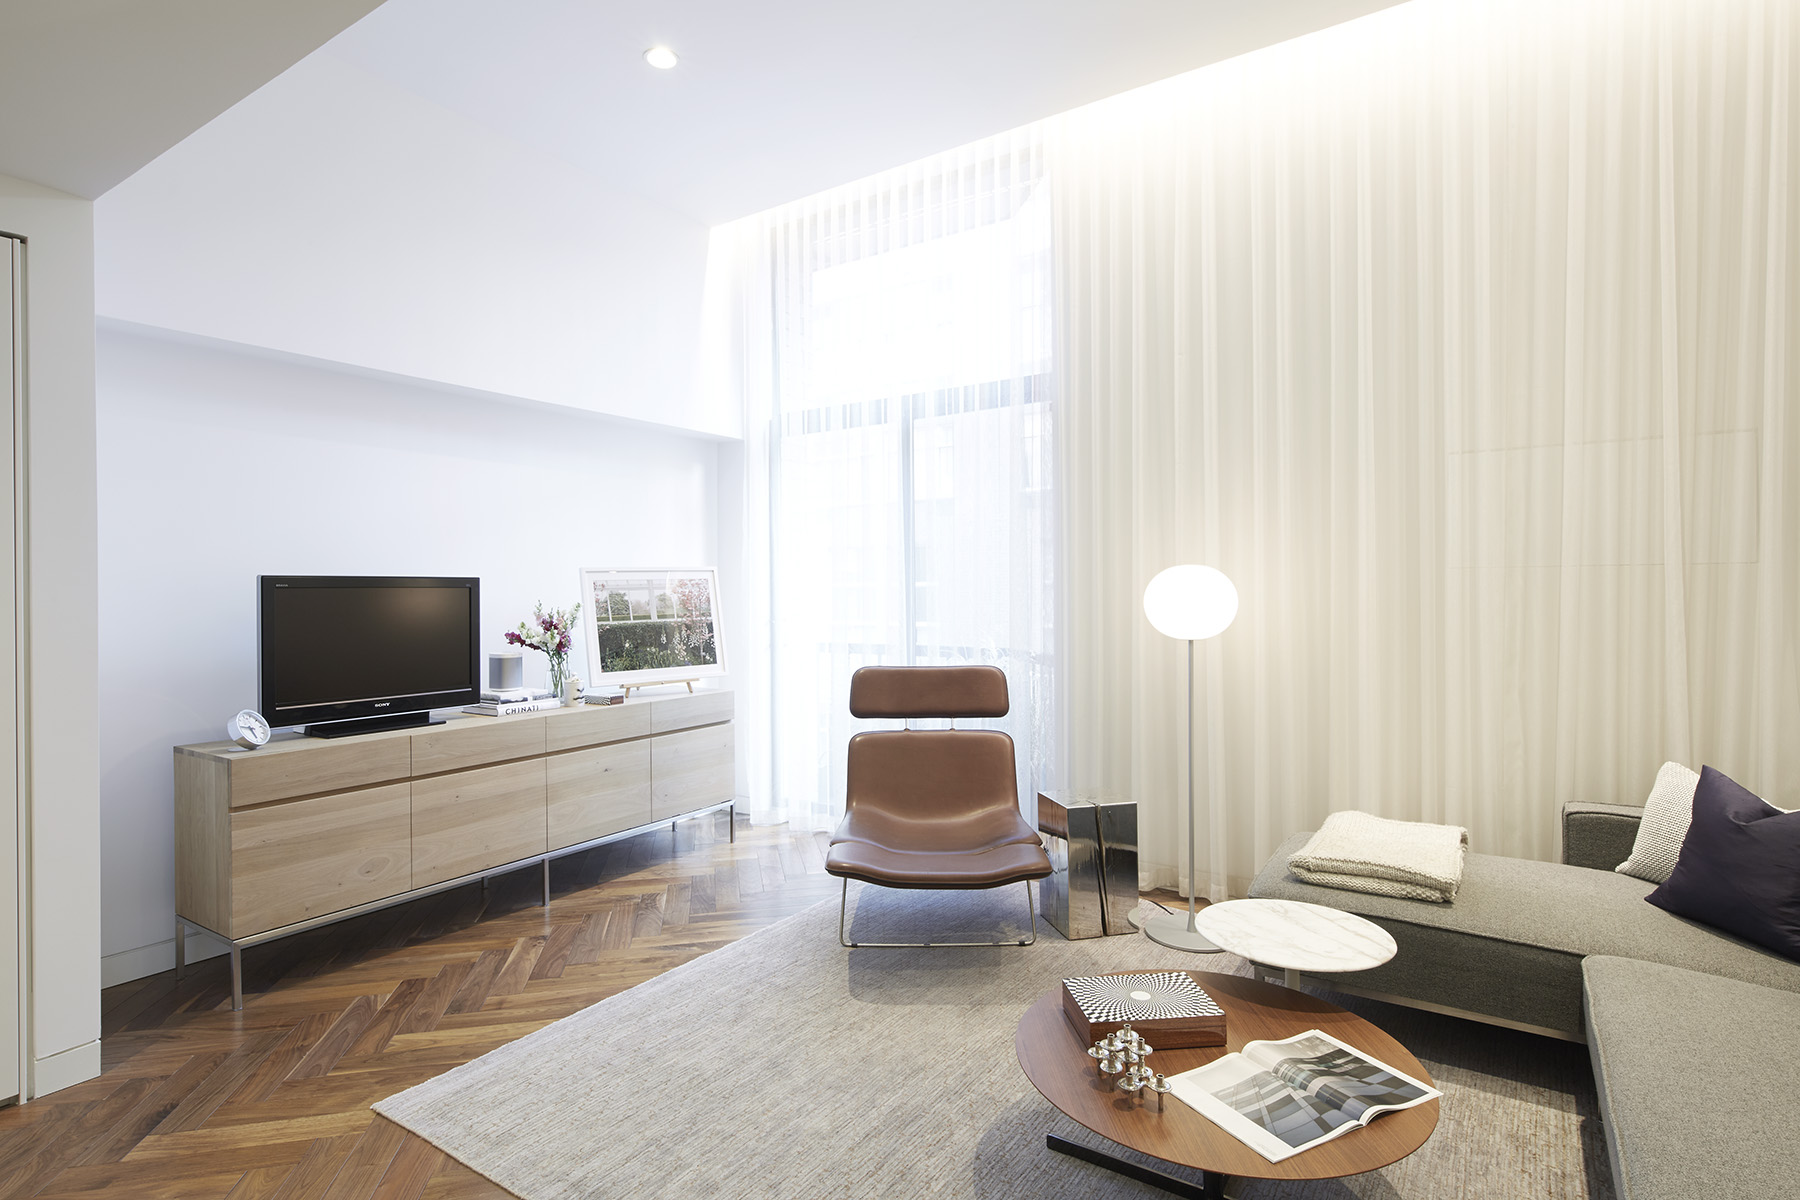 STADT Architecture, Gramercy Apartment, Cappellini, ABC Home, Walnut Floors, Fornasetti, STADT